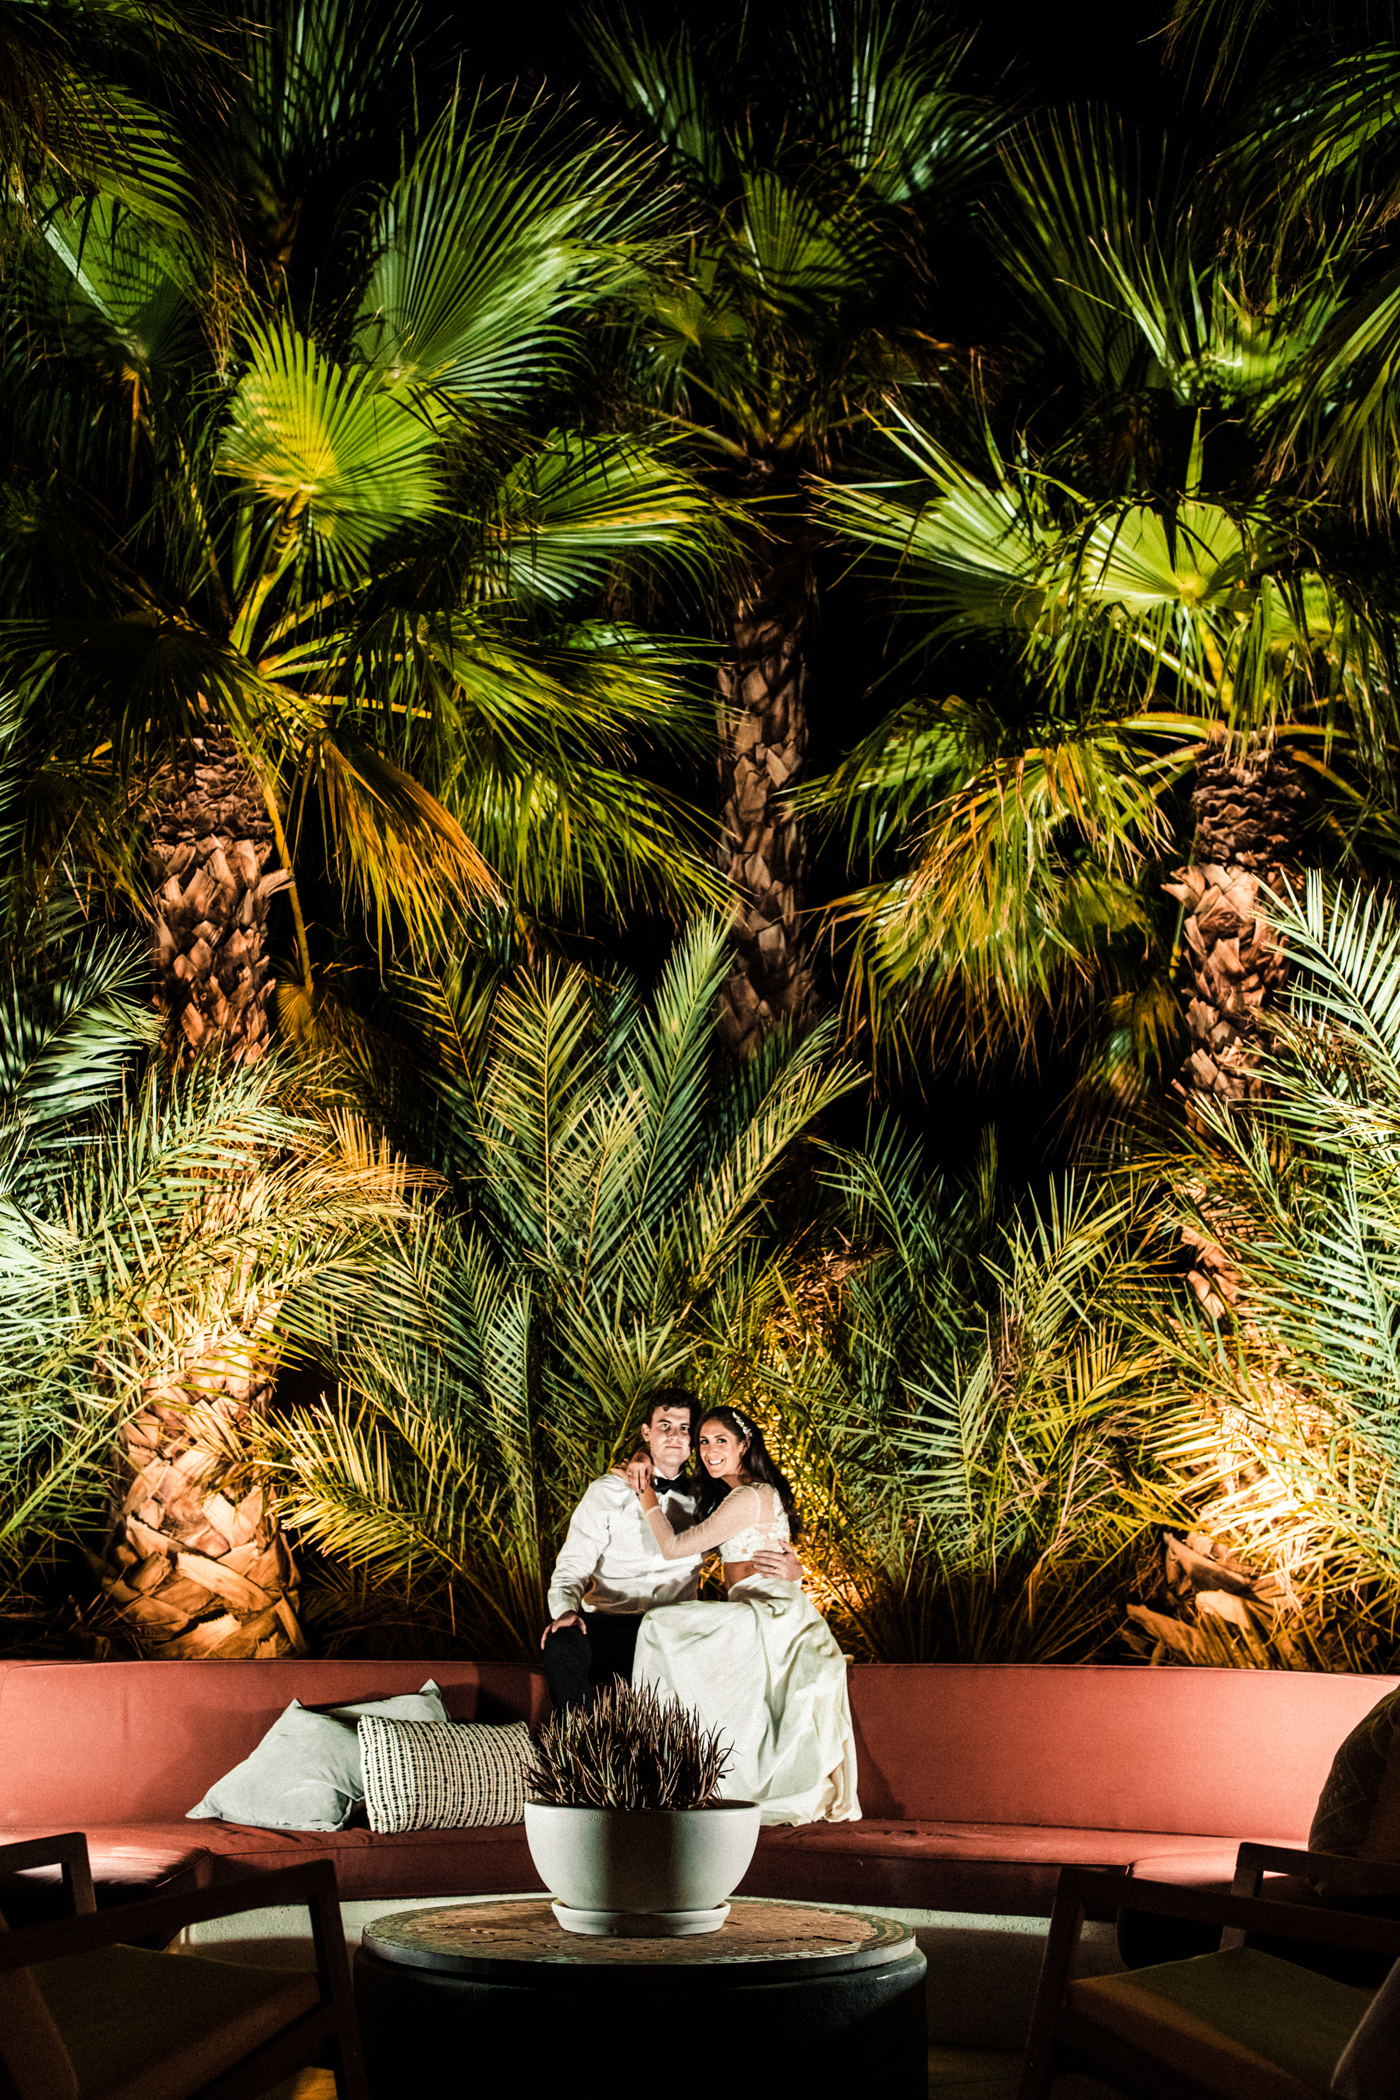 The-Lautner-Compound-Wedding-Palm-Springs-90.jpg